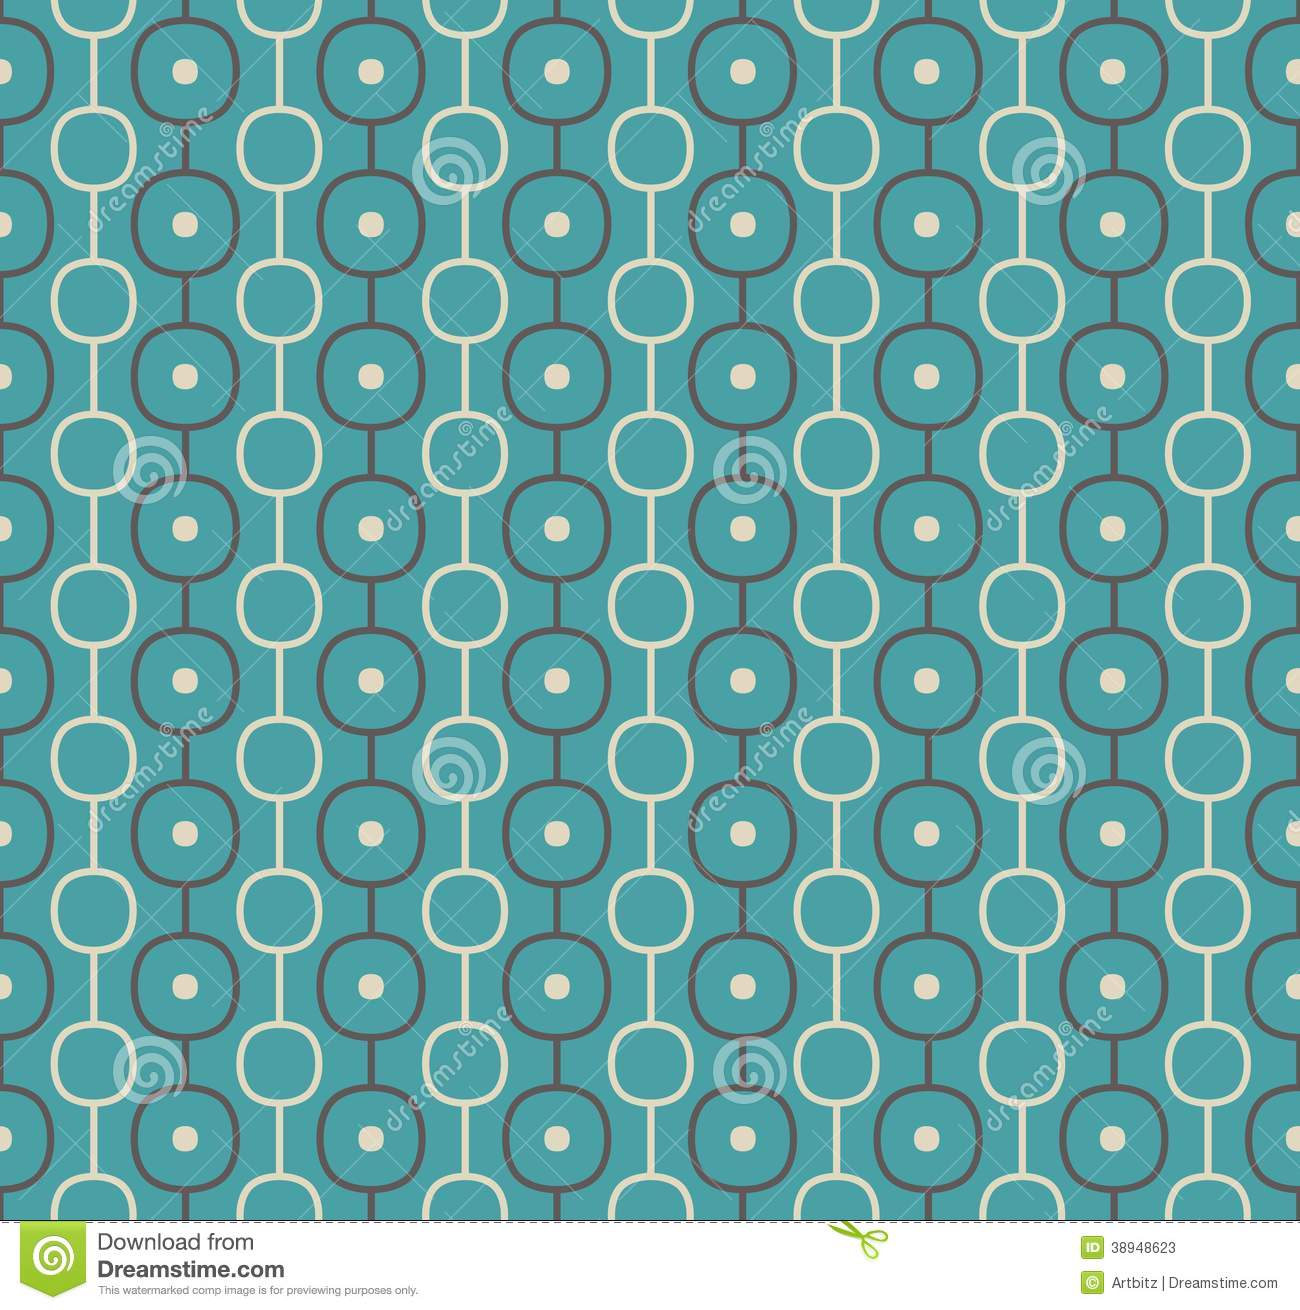 Retro Vector Atomic Background Repeating Pattern Stock